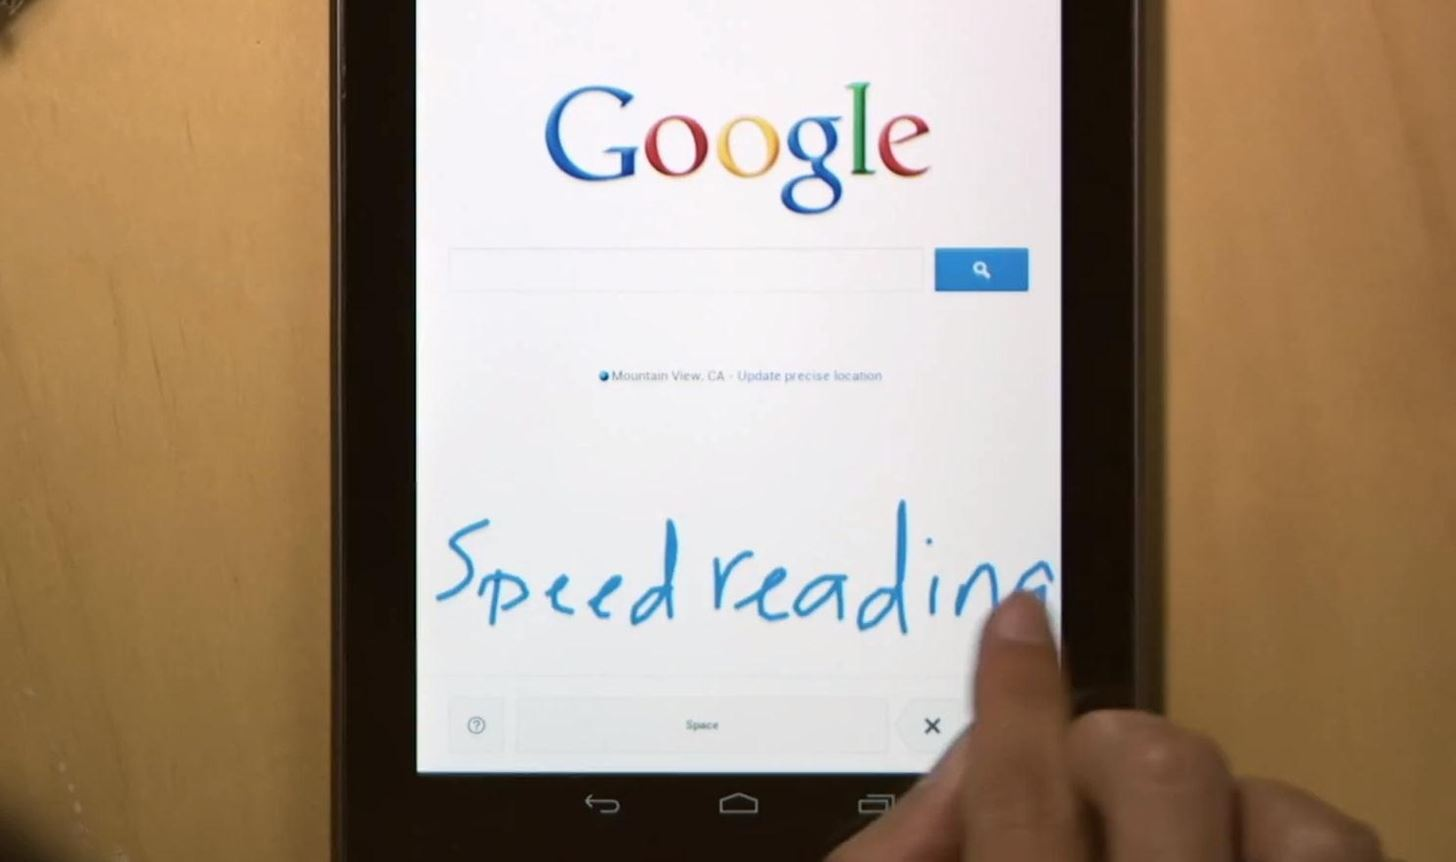 How to Use Google's New Handwrite Mobile Search Feature on Your Smartphone